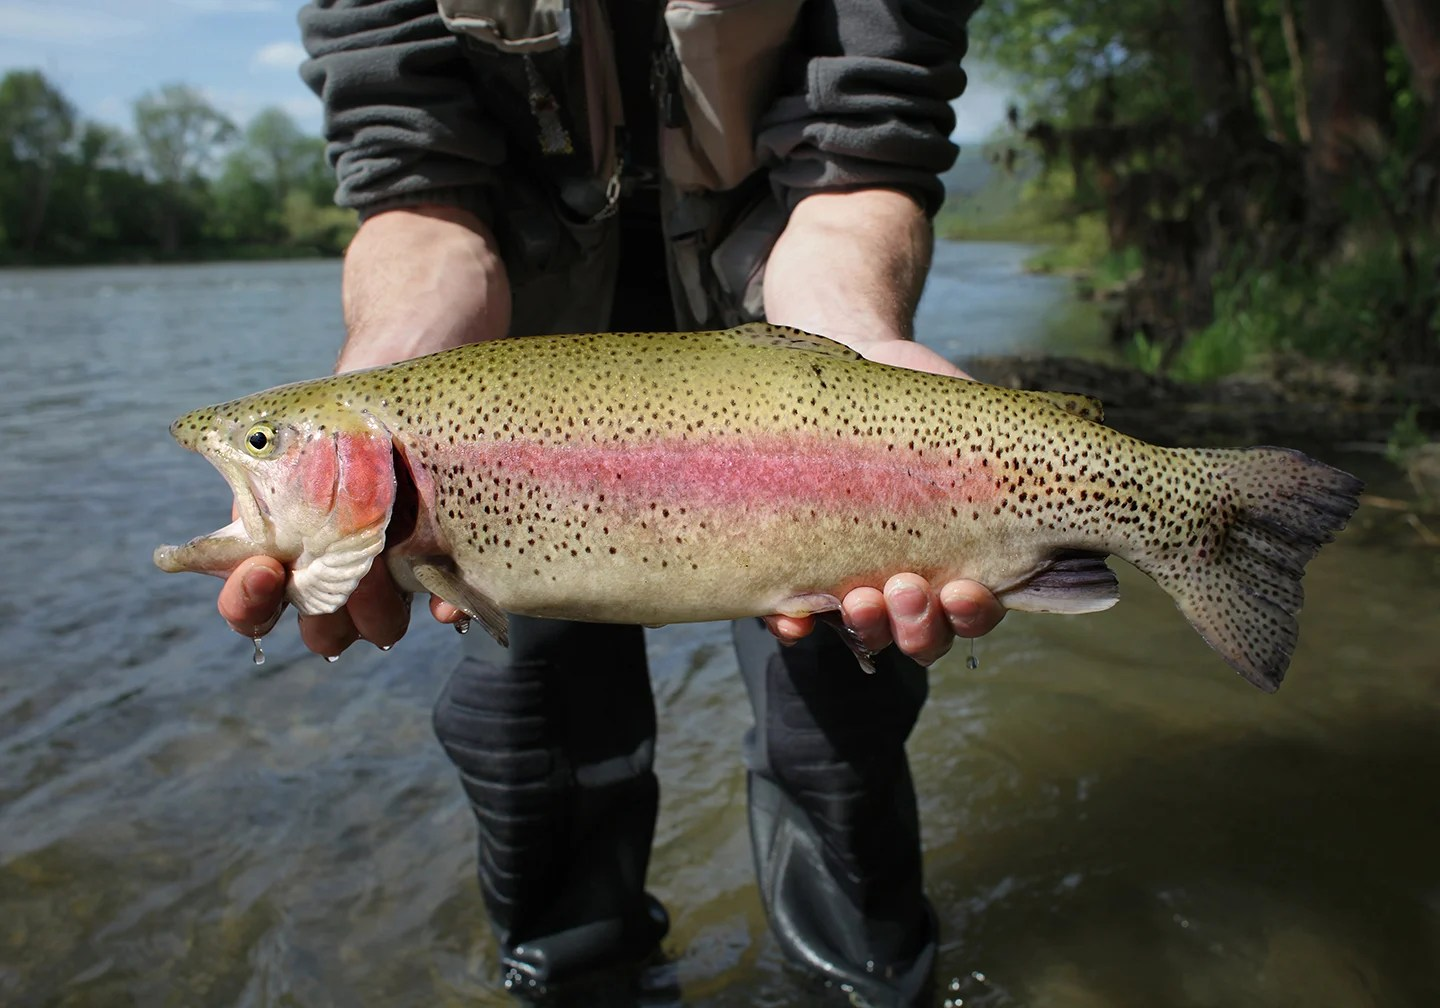 A small Rainbow Trout being held above a shallow stream by a fisherman.